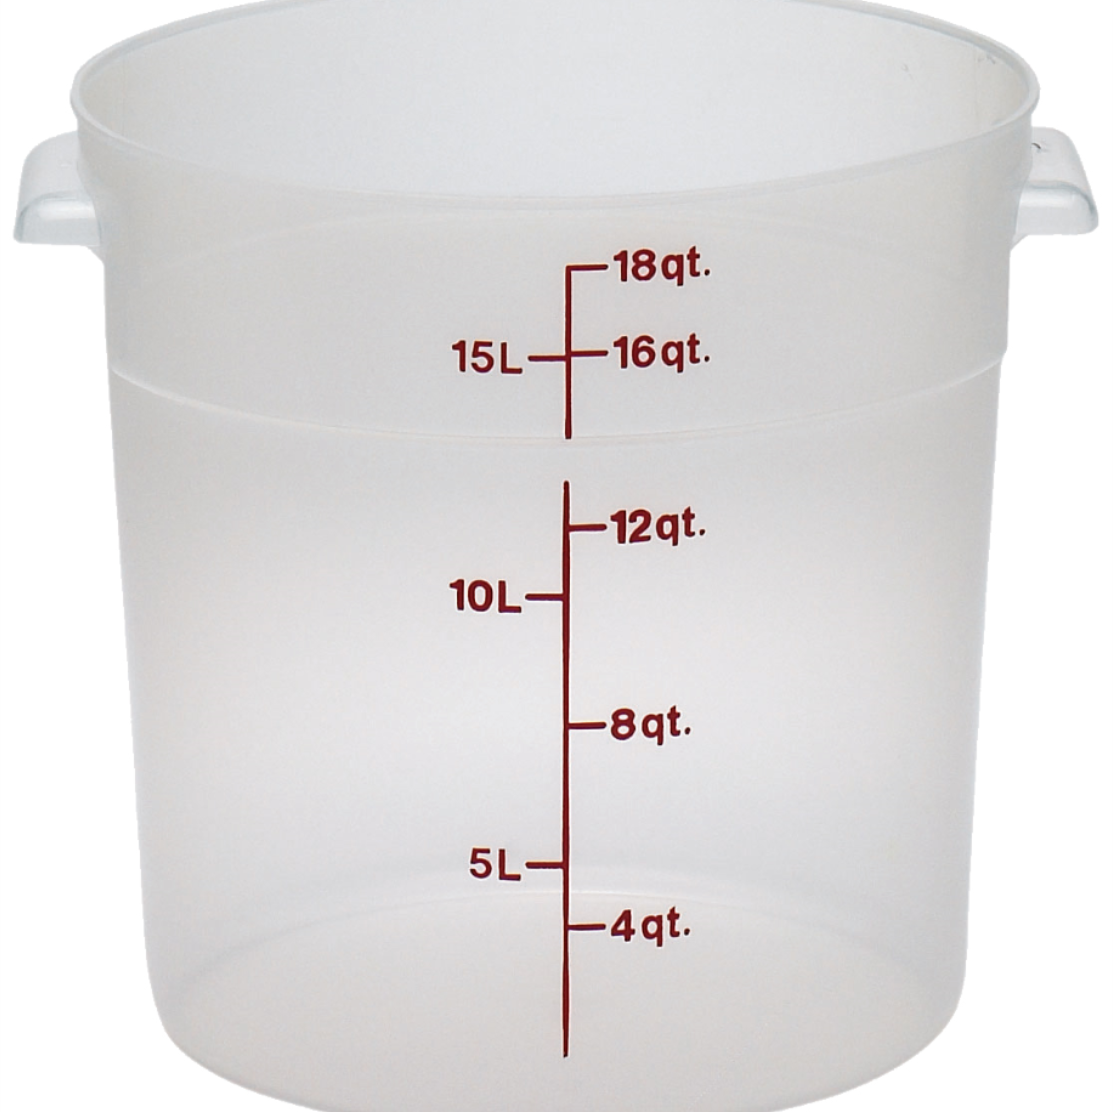 2700-56 Cambro Food Storage Container 18qt rnd translucent